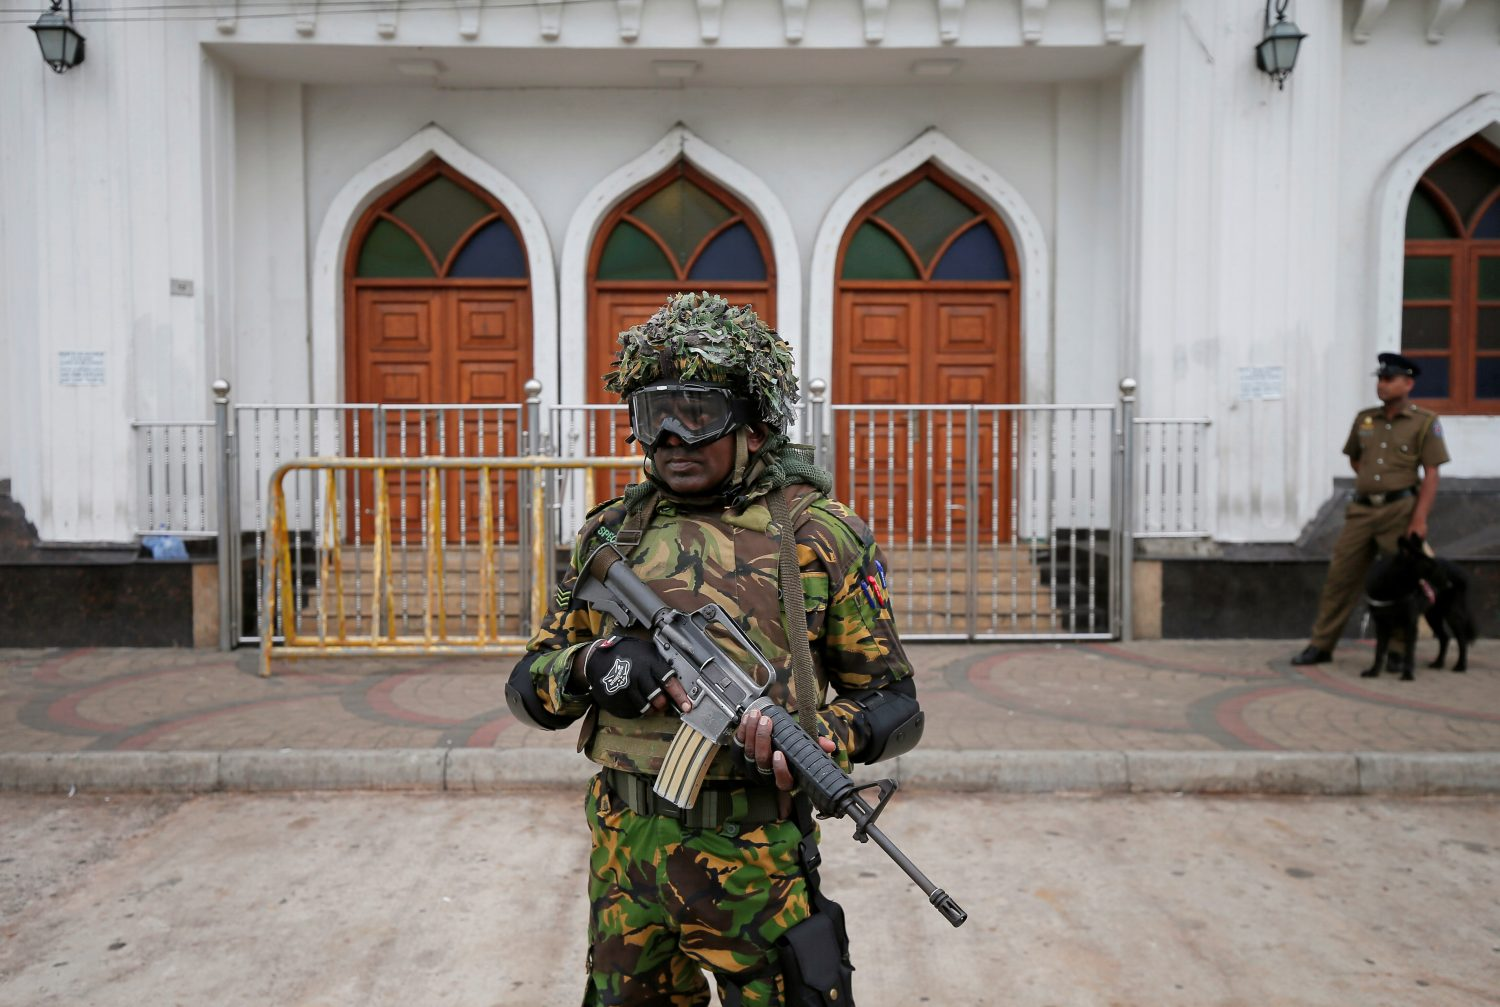 Sri Lankan Special Task Force soldiers stand guard in front of a mosque as a muslim man walks past him during the Friday prayers at a mosque, five days after a string of suicide bomb attacks on Catholic churches and luxury hotels across the island on Easter Sunday, in Colombo, Sri Lanka April 26, 2019. REUTERS/Dinuka Liyanawatte